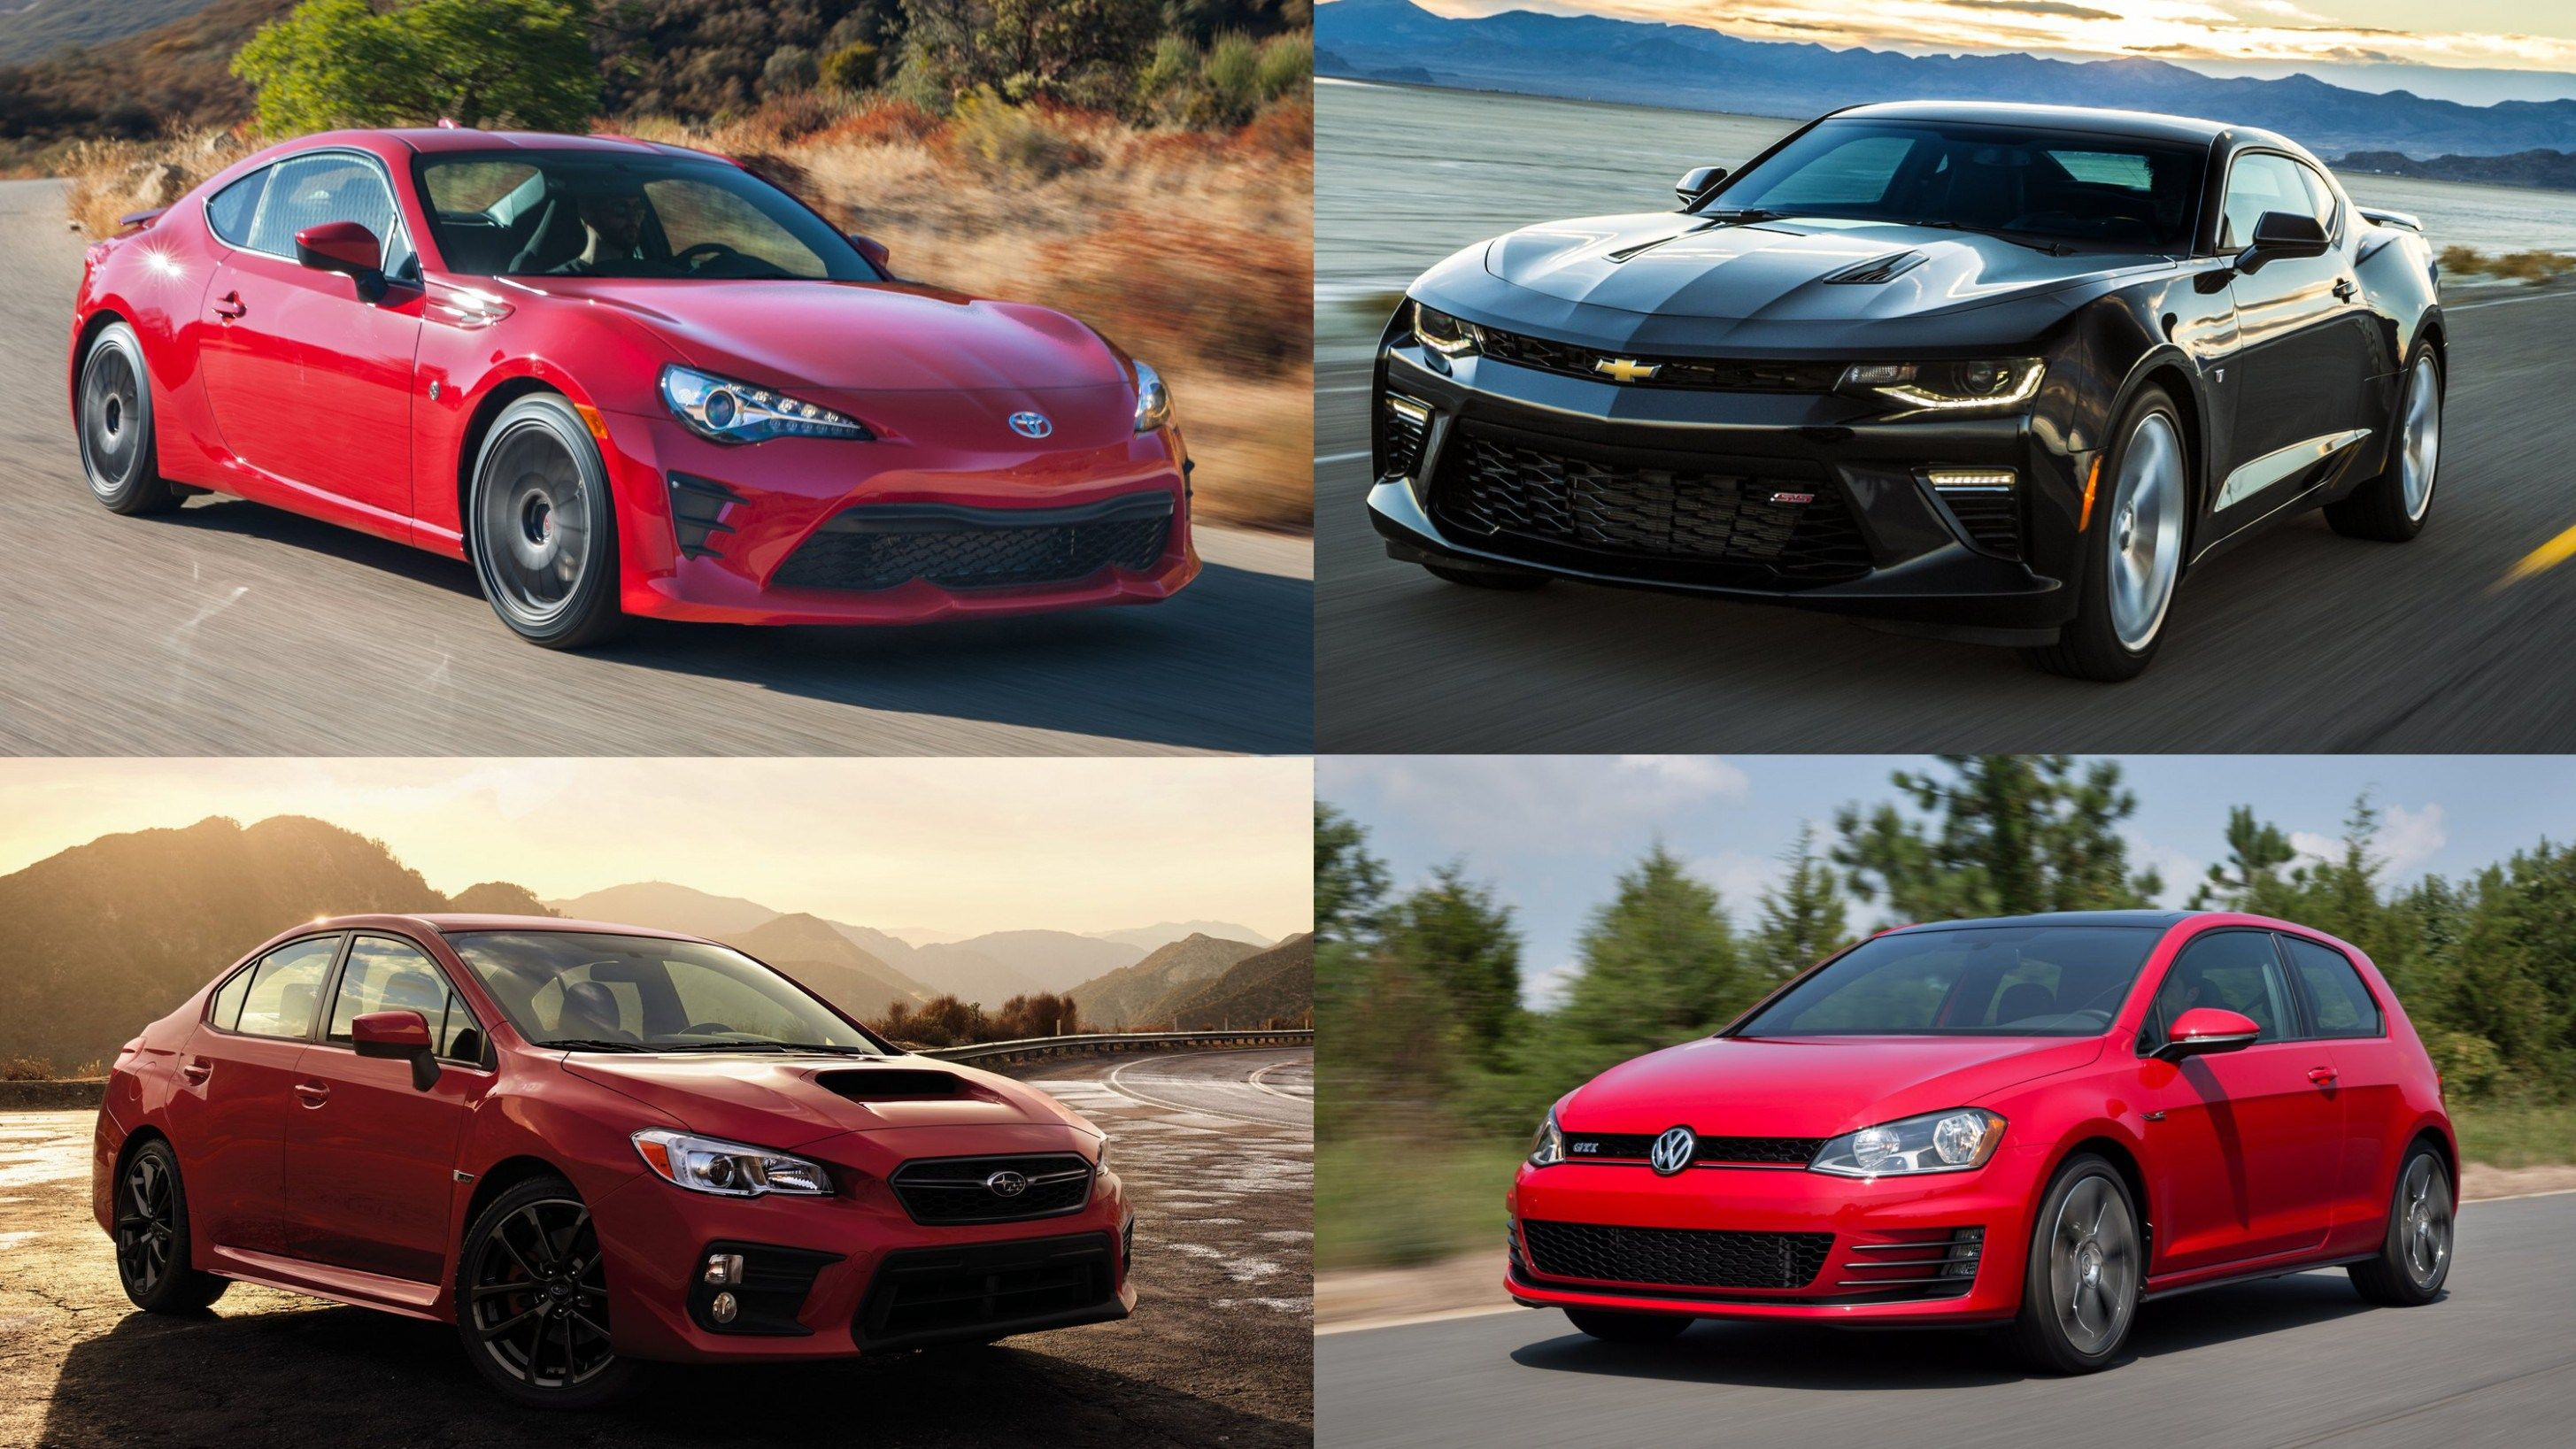 whats so trendy about affordable sporty cars that everyone went crazy over it affordable [ 2910 x 1637 Pixel ]